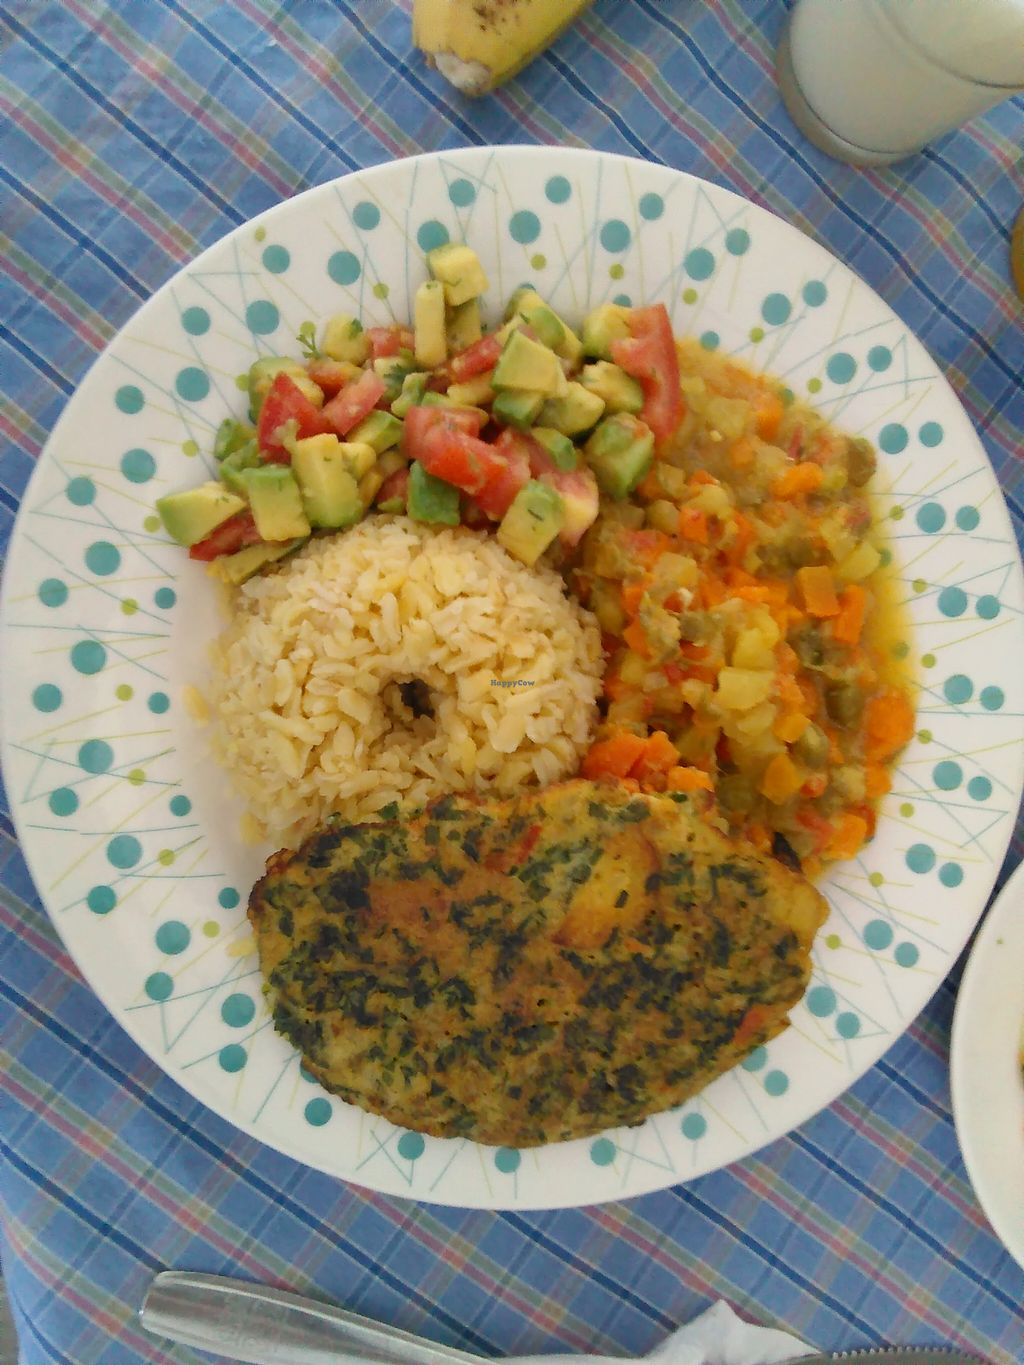 """Photo of REMOVED: Rincon Vegetariano  by <a href=""""/members/profile/maynard7"""">maynard7</a> <br/>Main plate, meal of the the day in March 2016 <br/> March 7, 2016  - <a href='/contact/abuse/image/32899/139125'>Report</a>"""